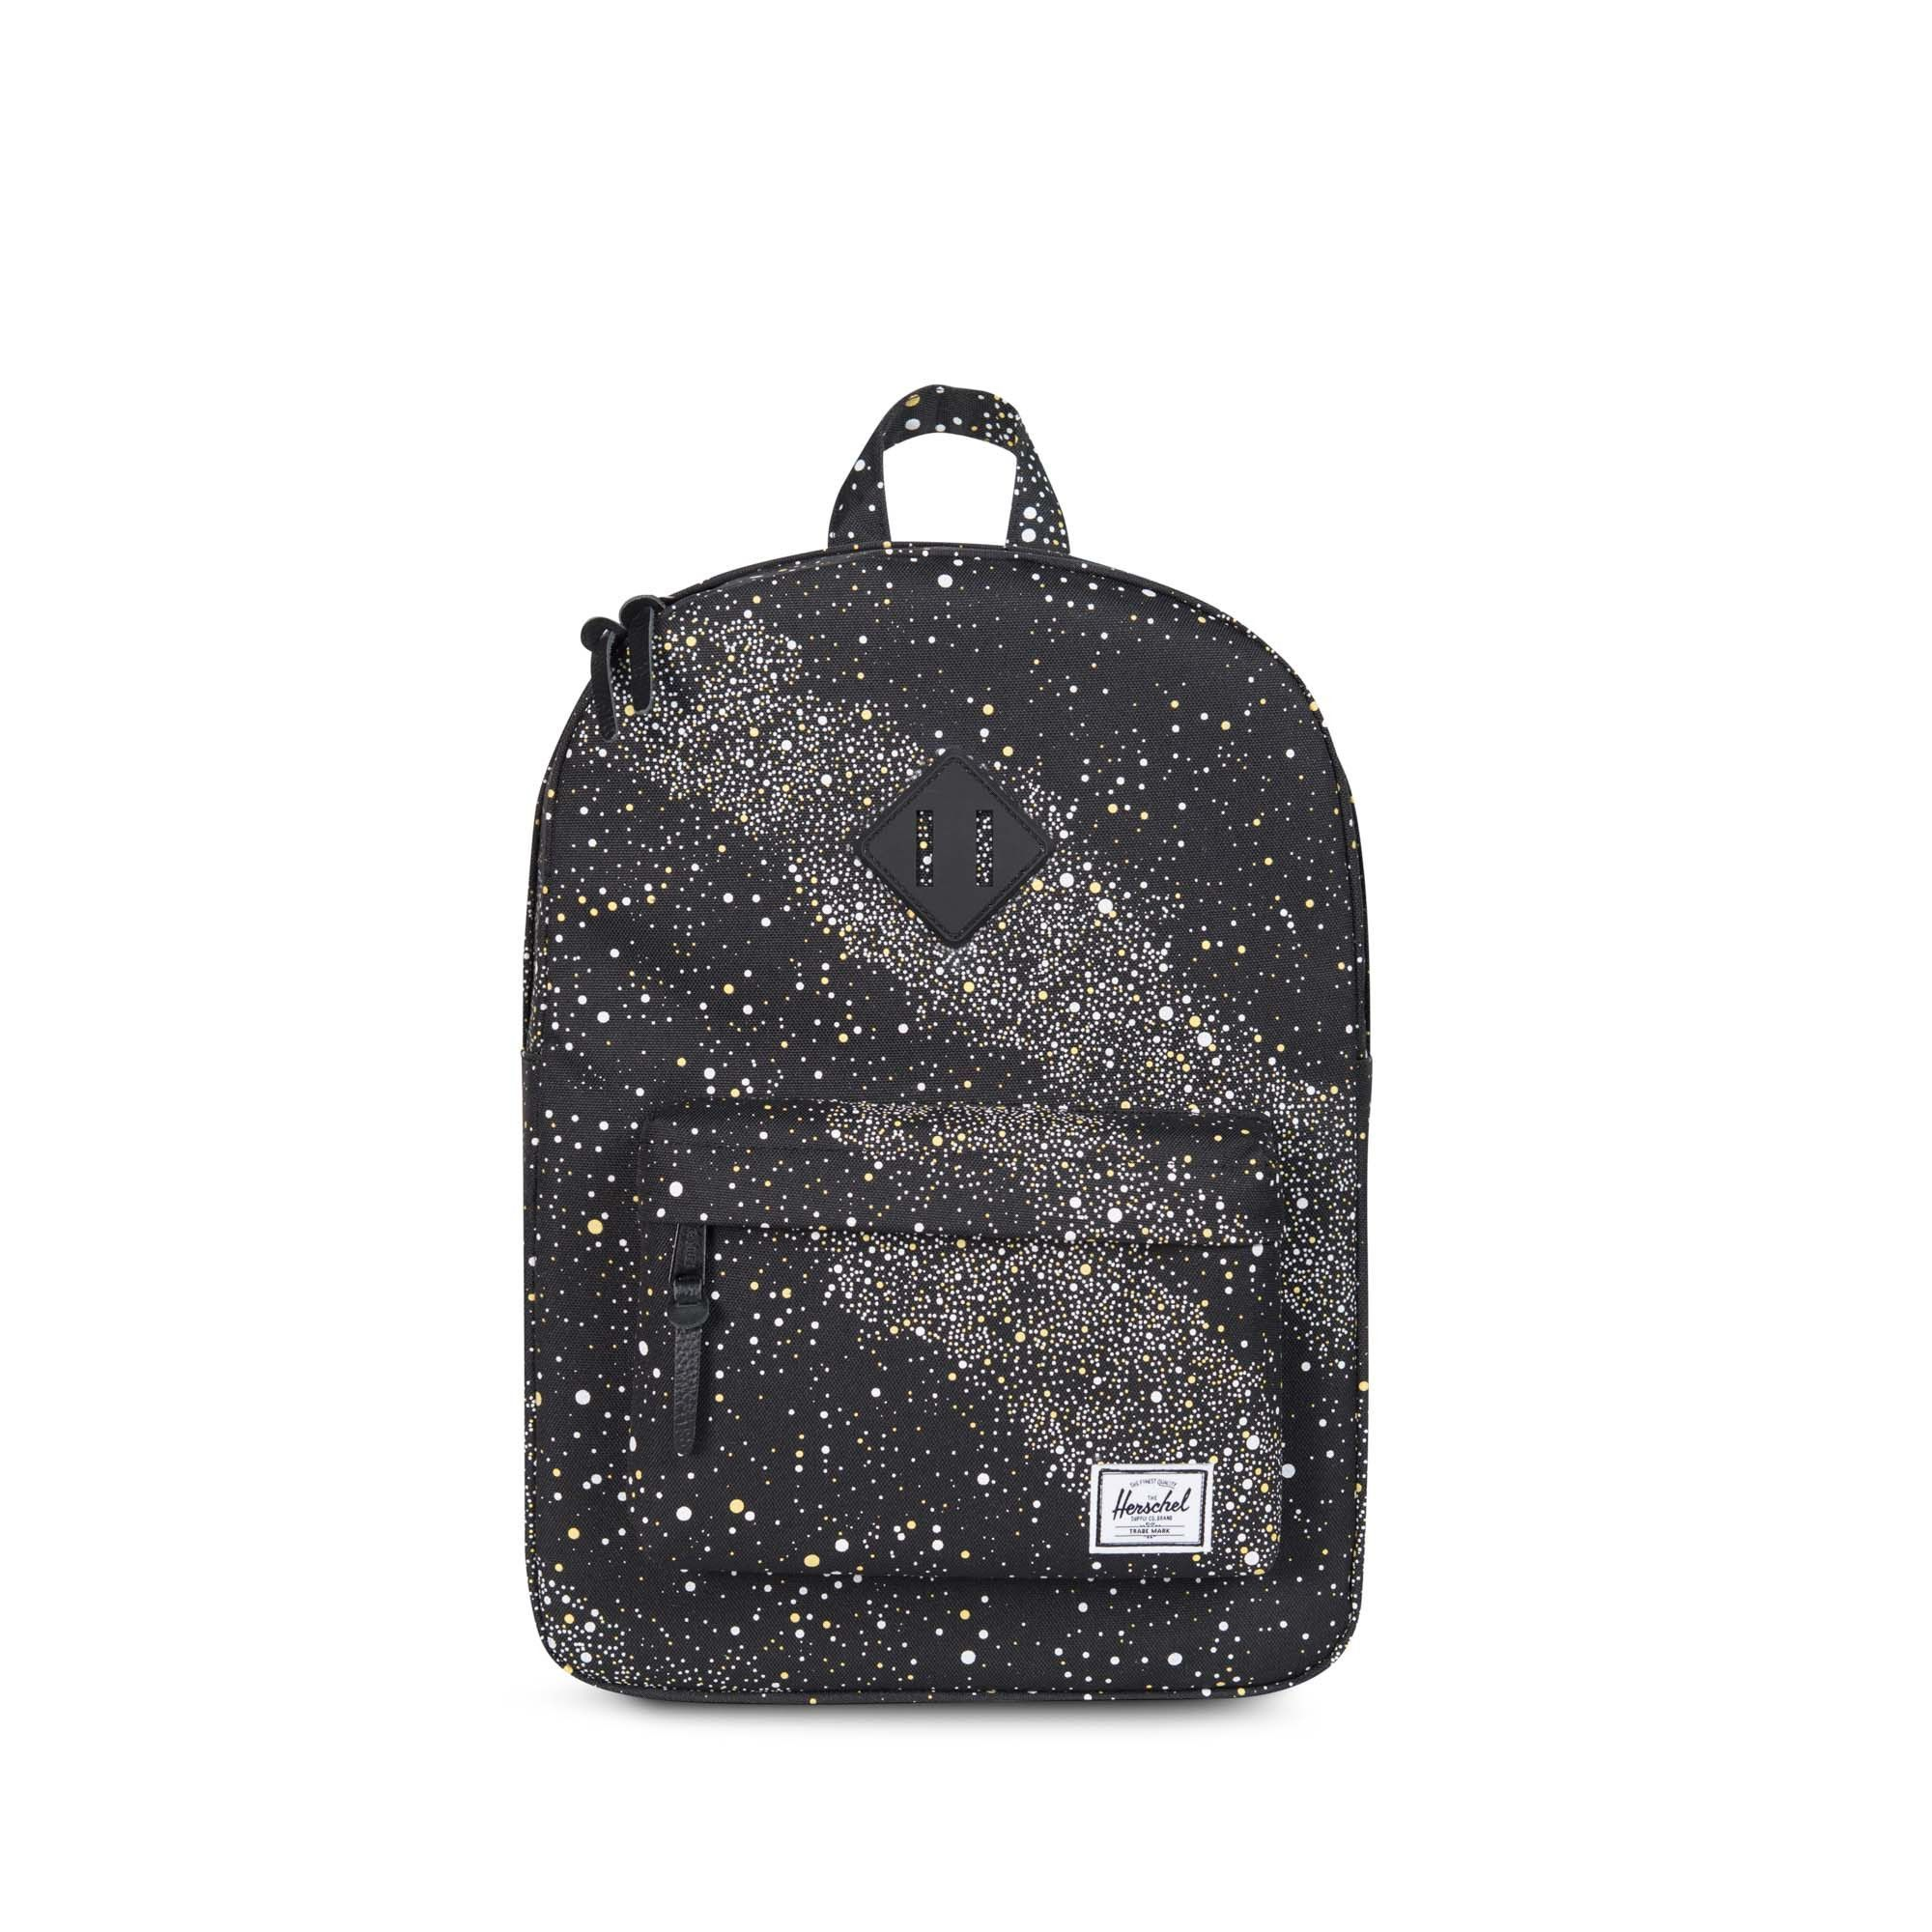 Heritage Youth Backpack in Poly Milky Way by Herschel Supply ... 72a627c1bdc96